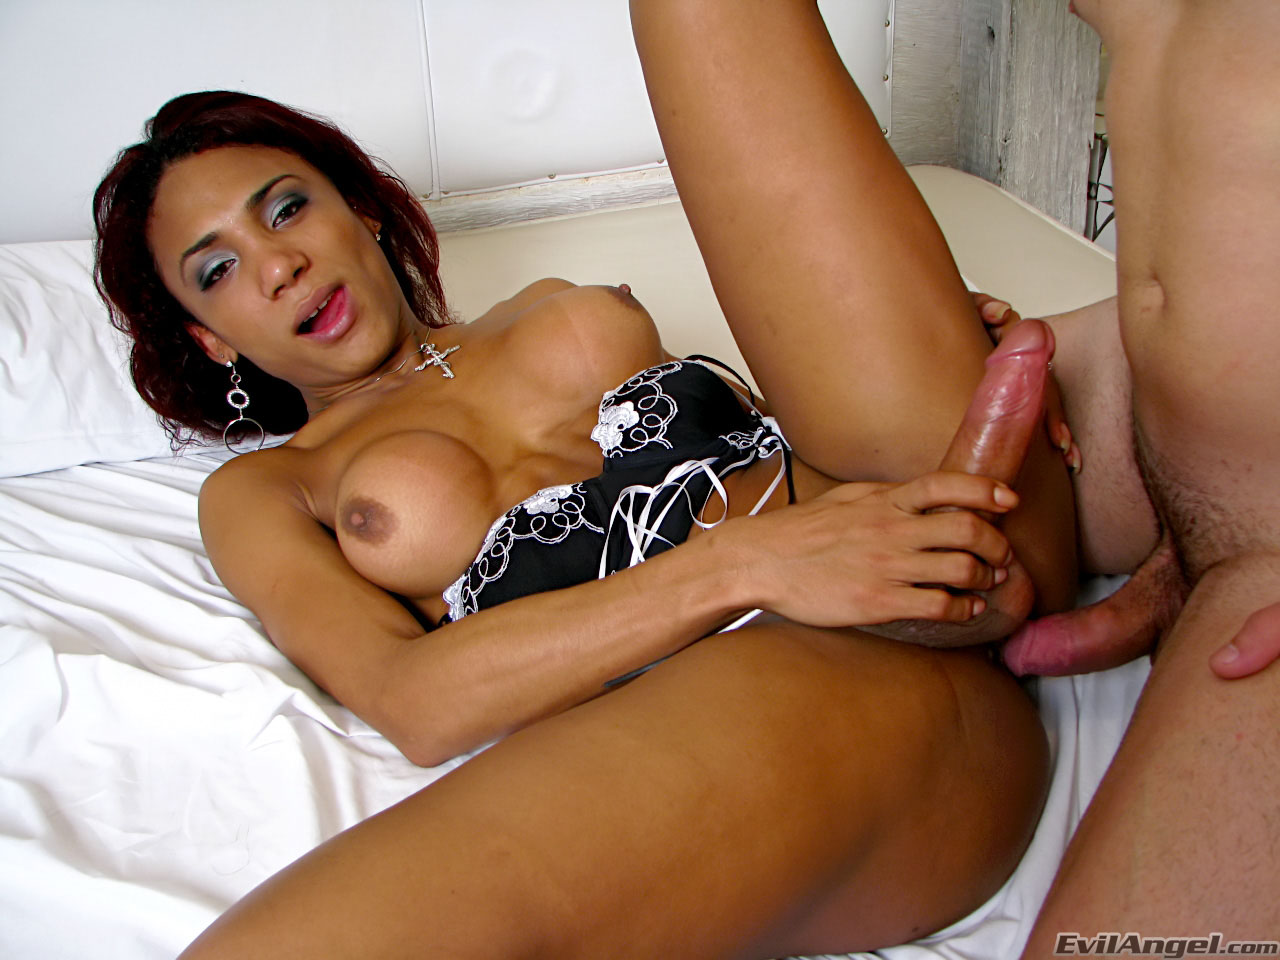 Sheplays with her cock